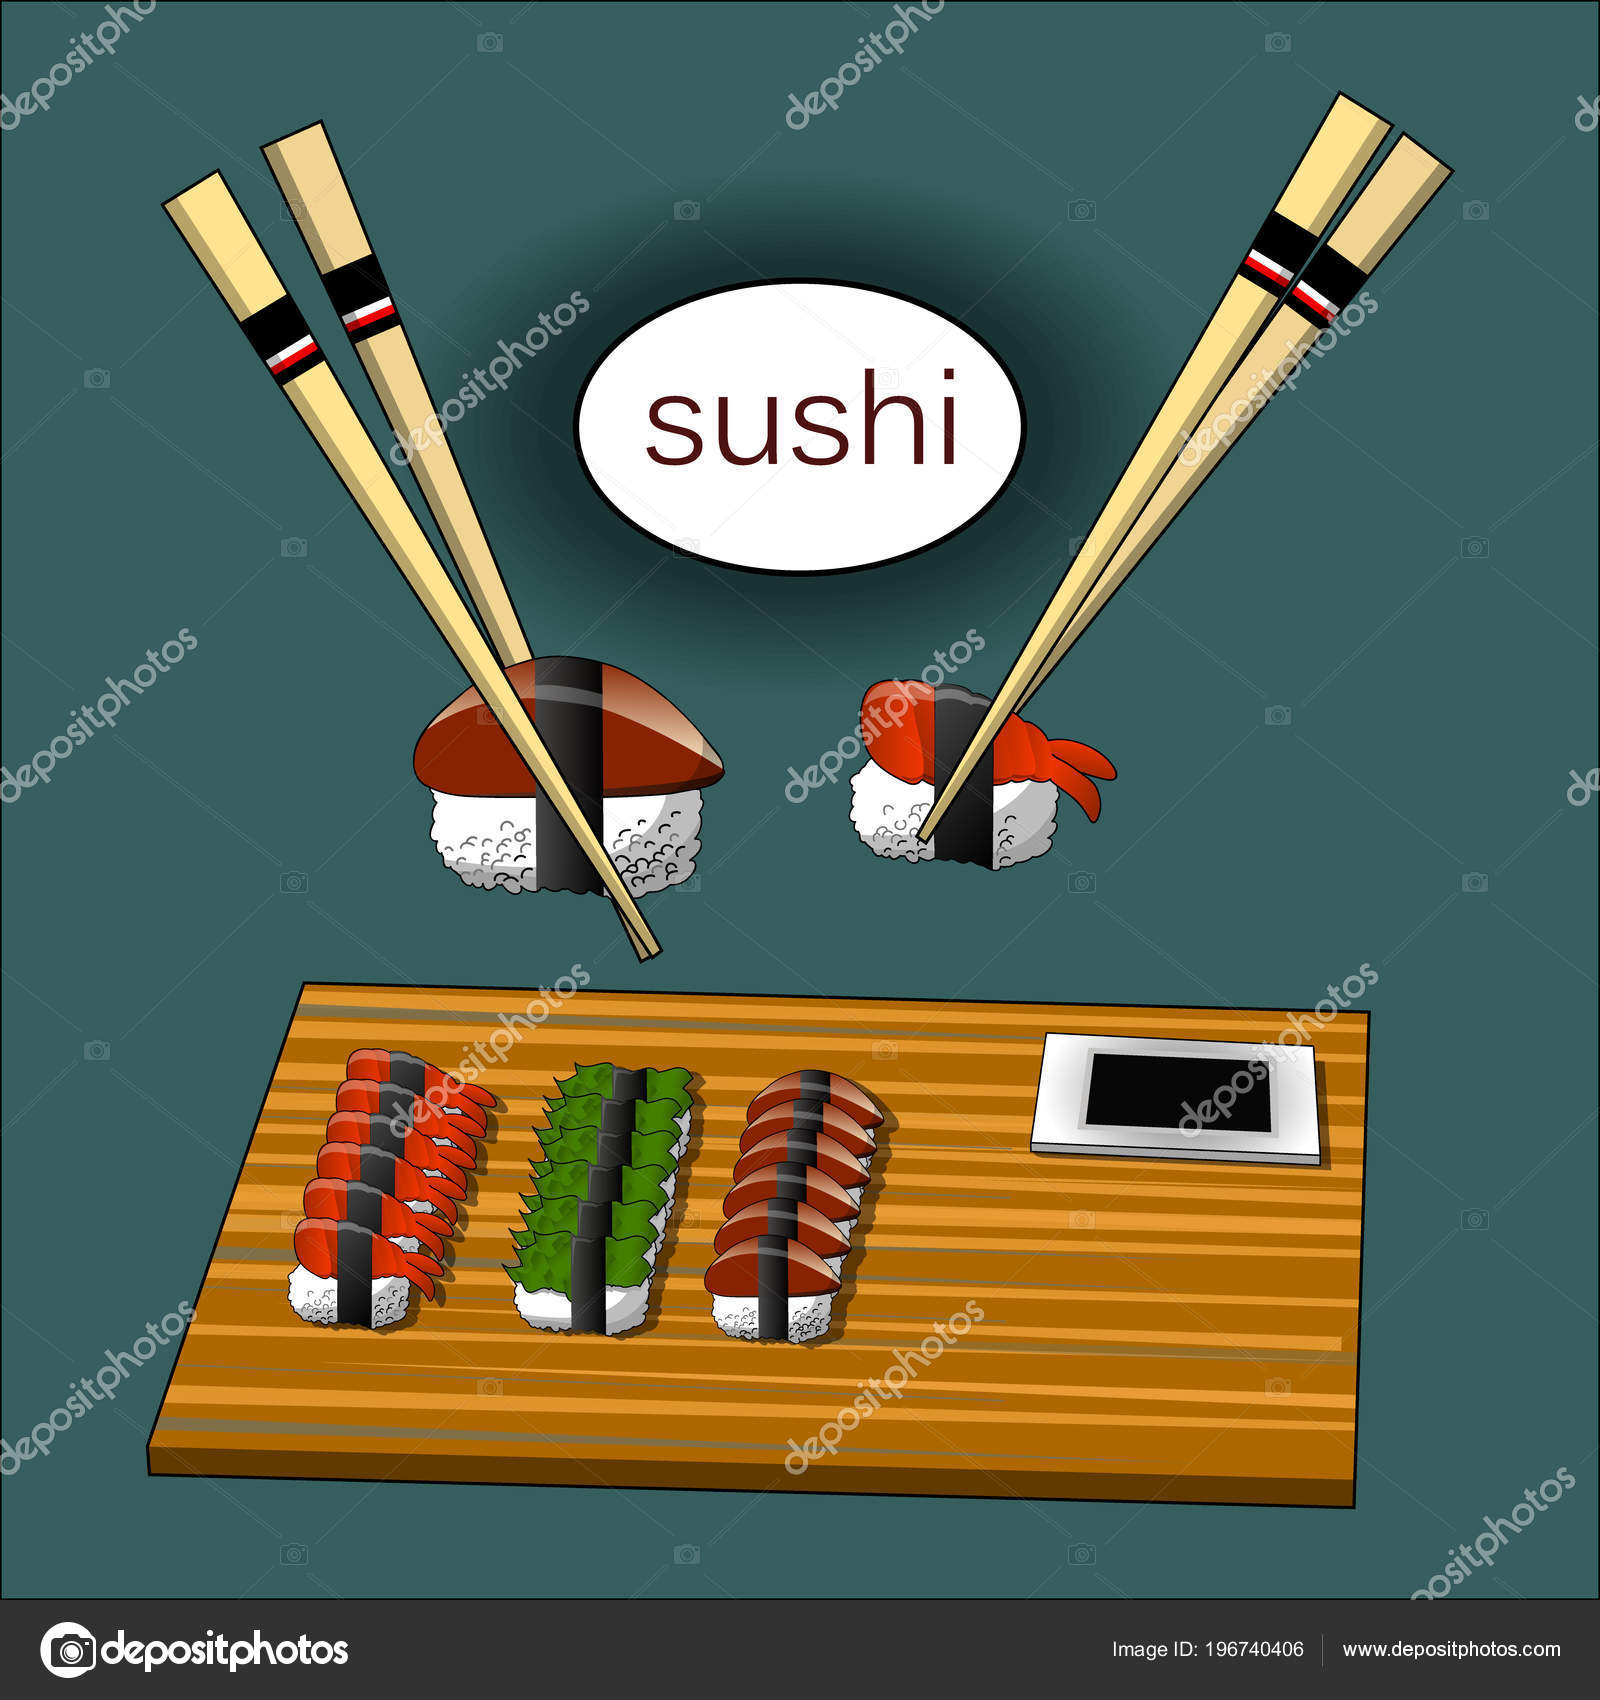 Concept Design Of The Invitation Sushi Restaurant Vector Illustration Stock Vector C Annamaglyak 196740406